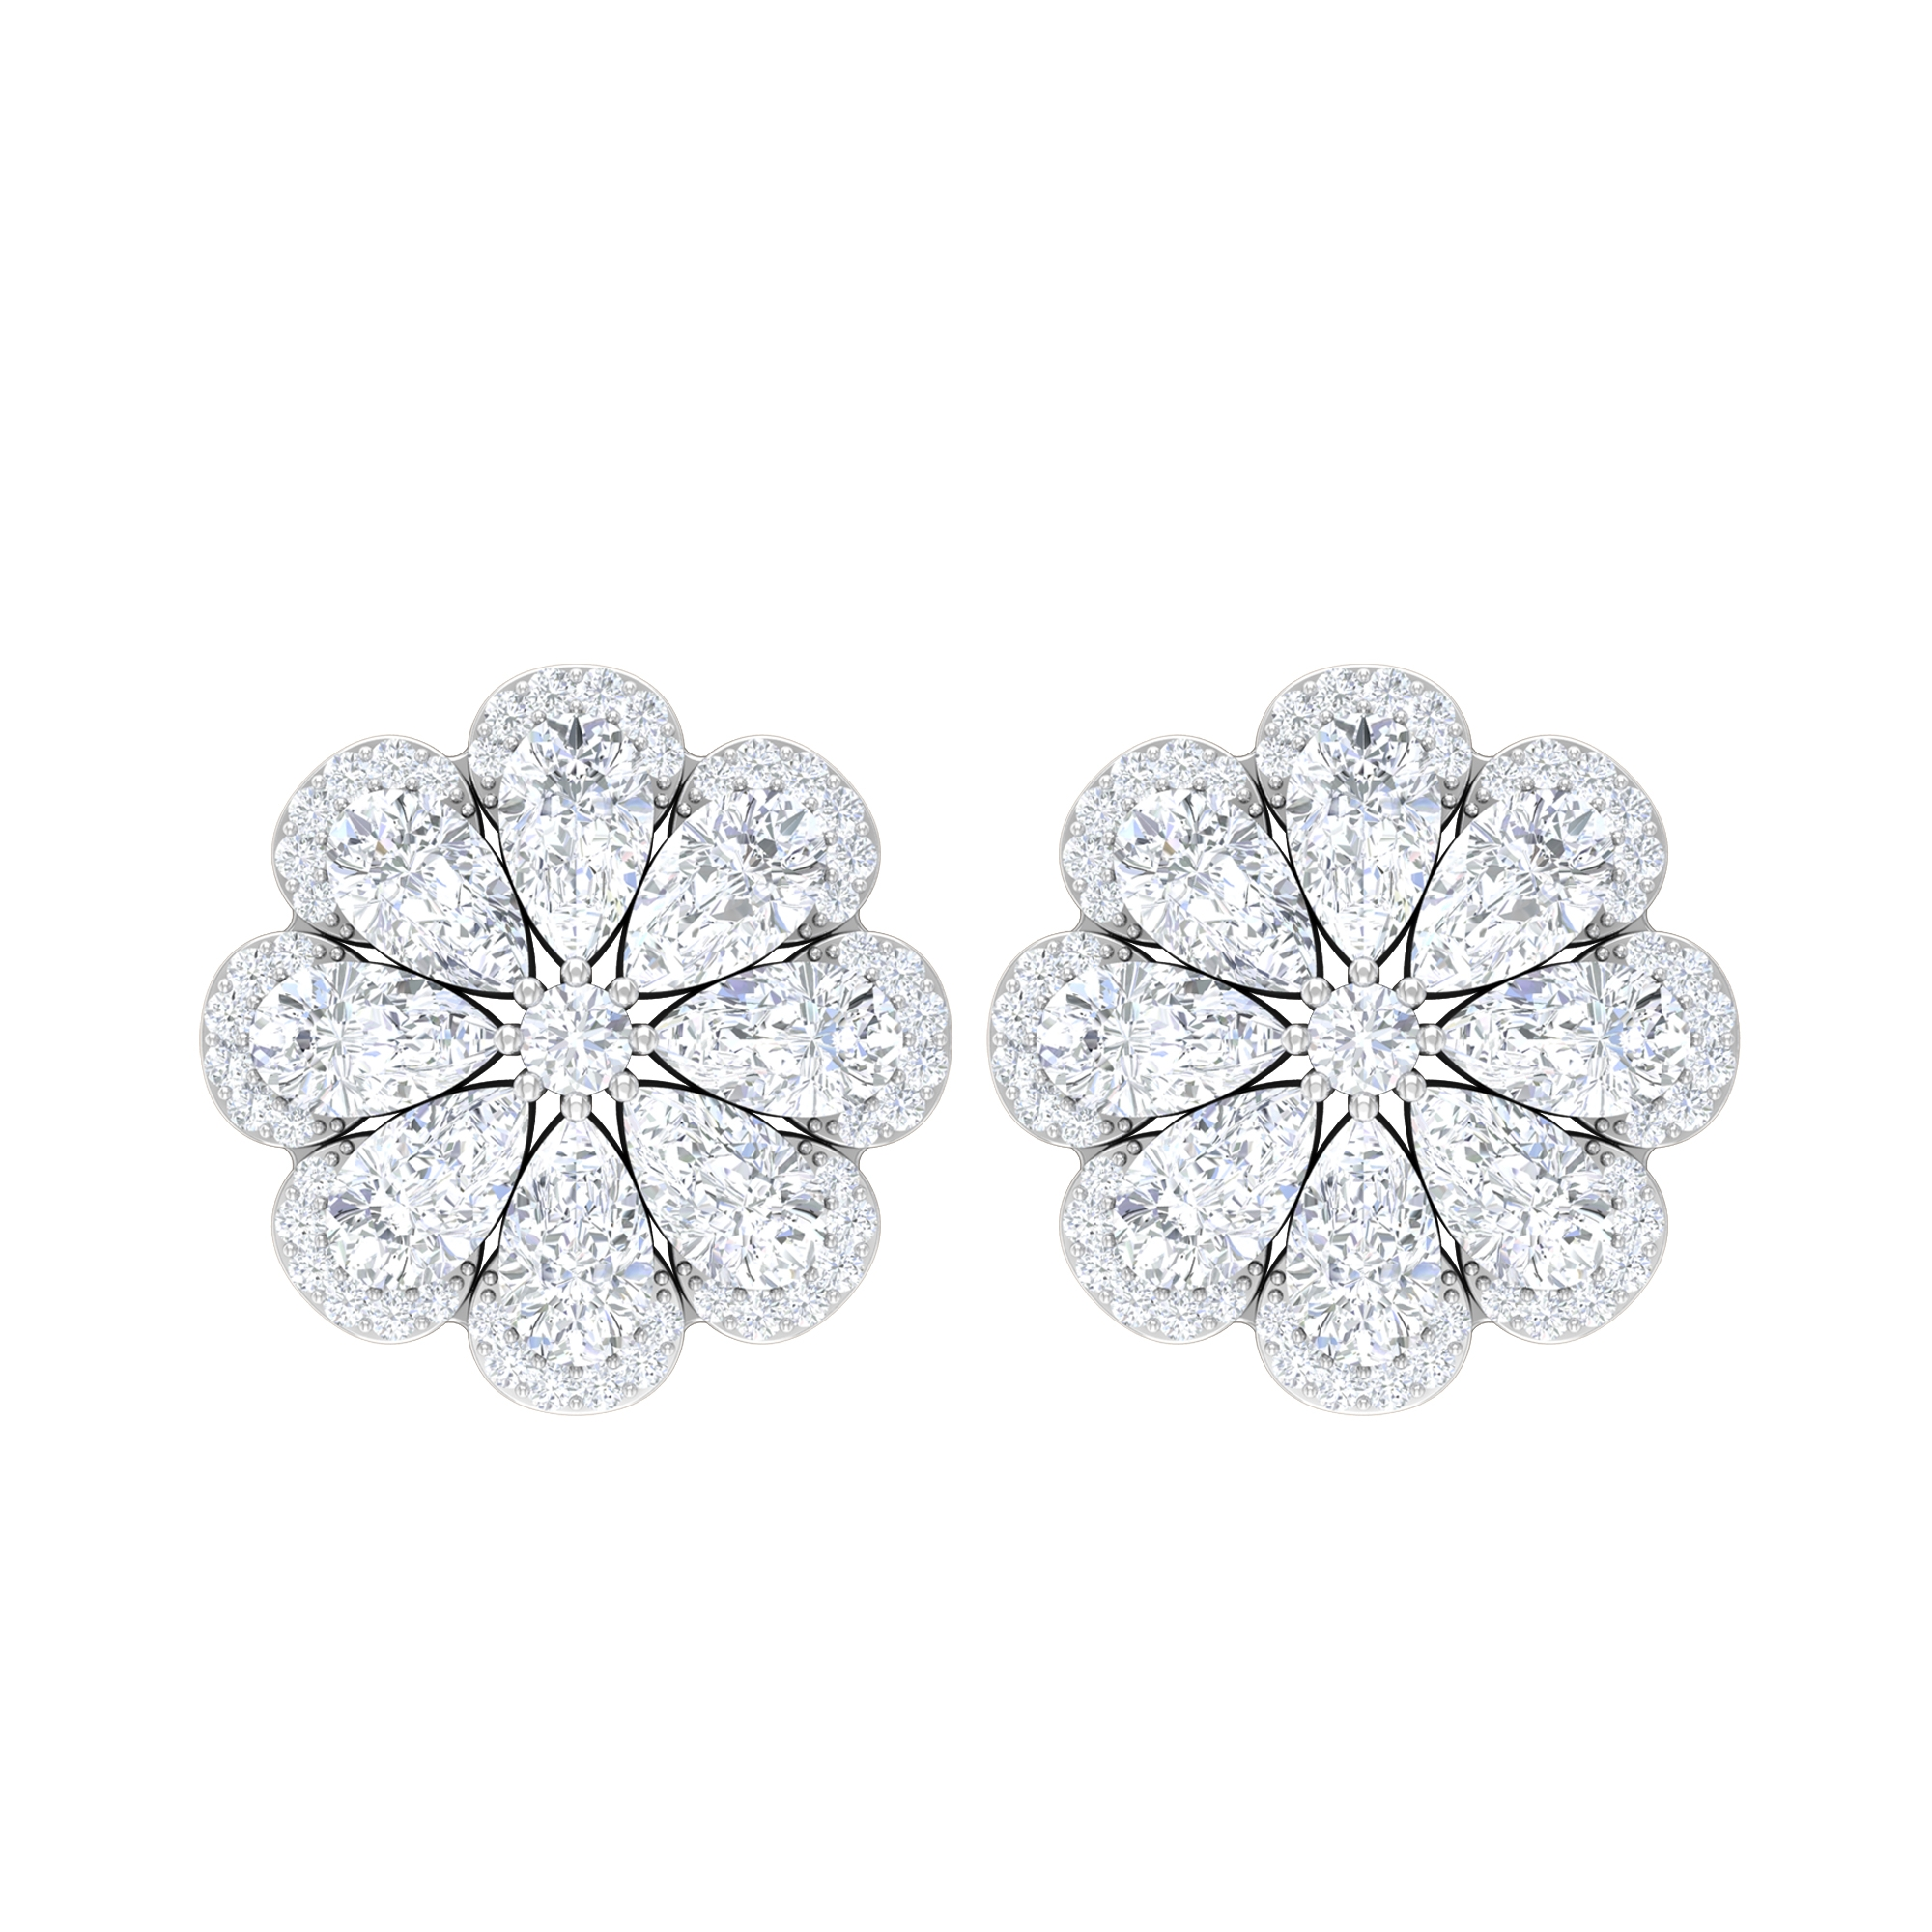 3.25 CT Diamond Floral Stud Earrings with Halo